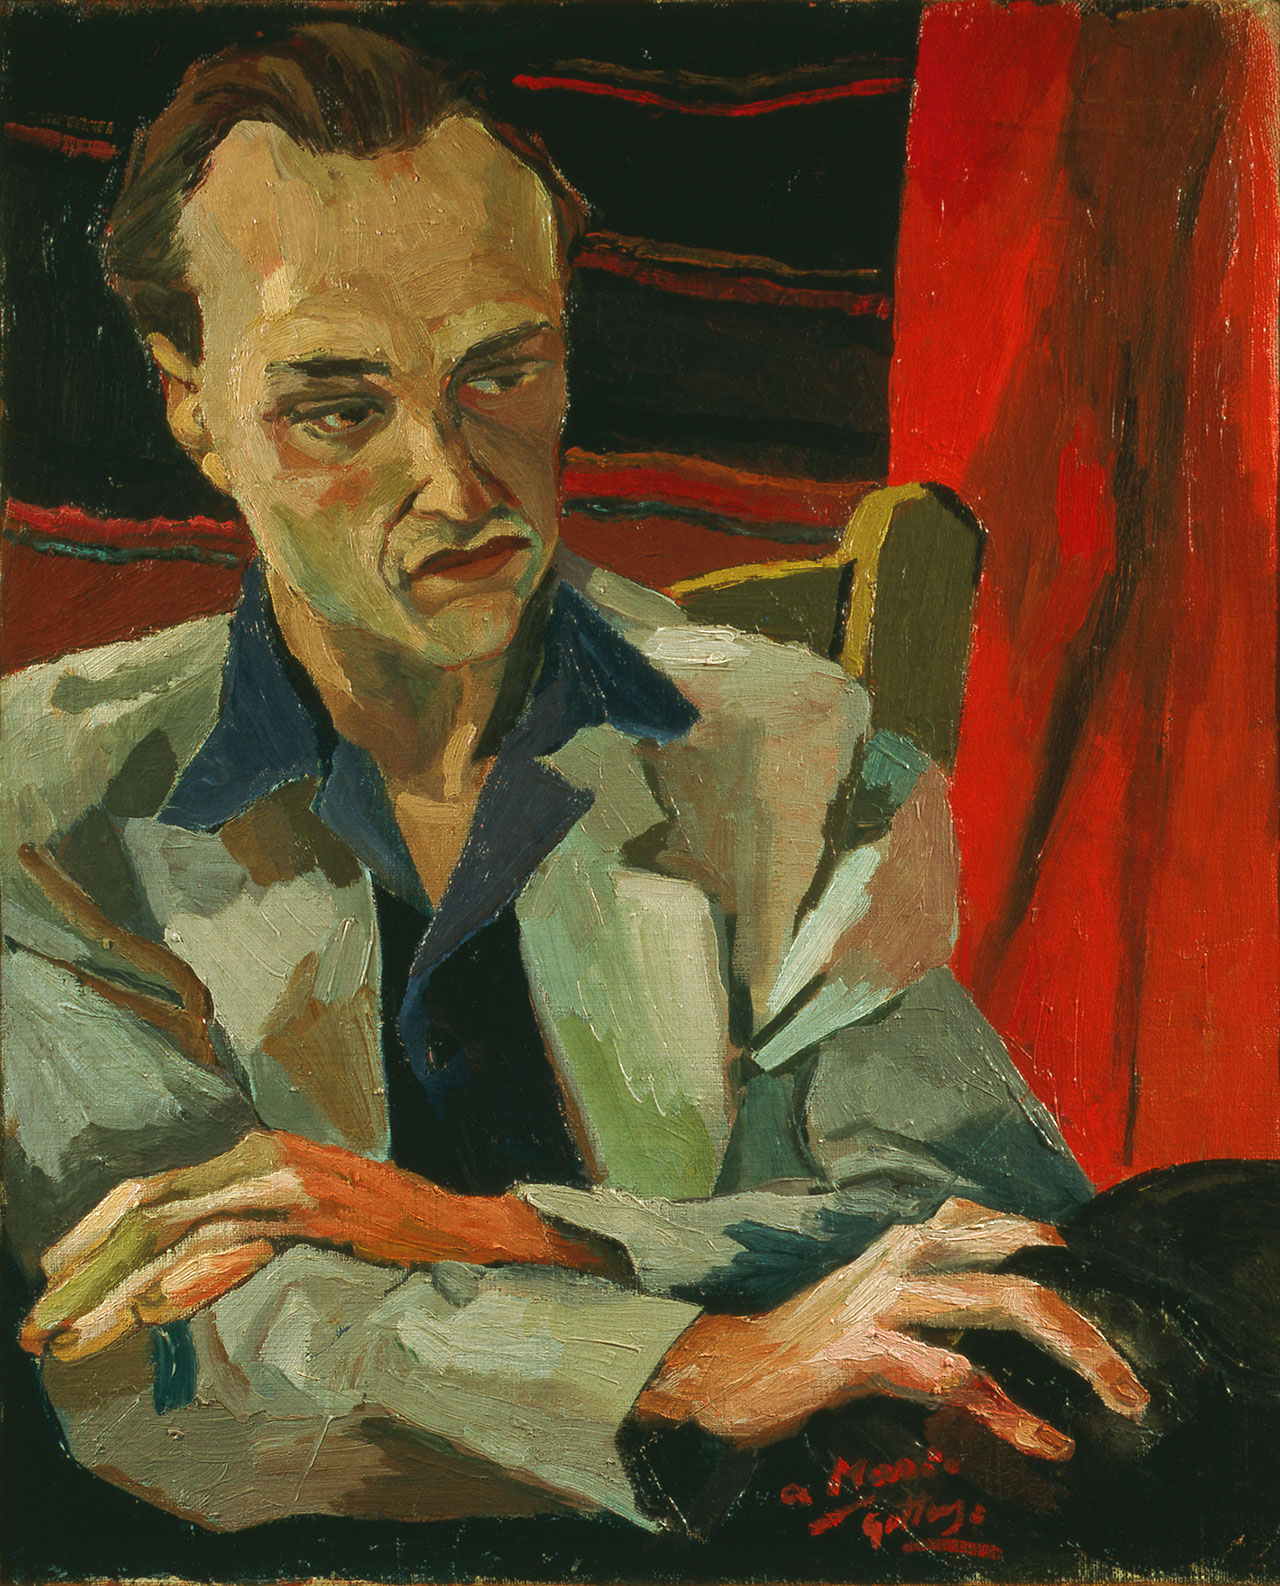 Renato Guttuso, Ritratto di Mario Alicata, 1940 Oil on canvas, 55 x 45 cm. Iannaccone collection © Renato Guttuso by SIAE 2018.